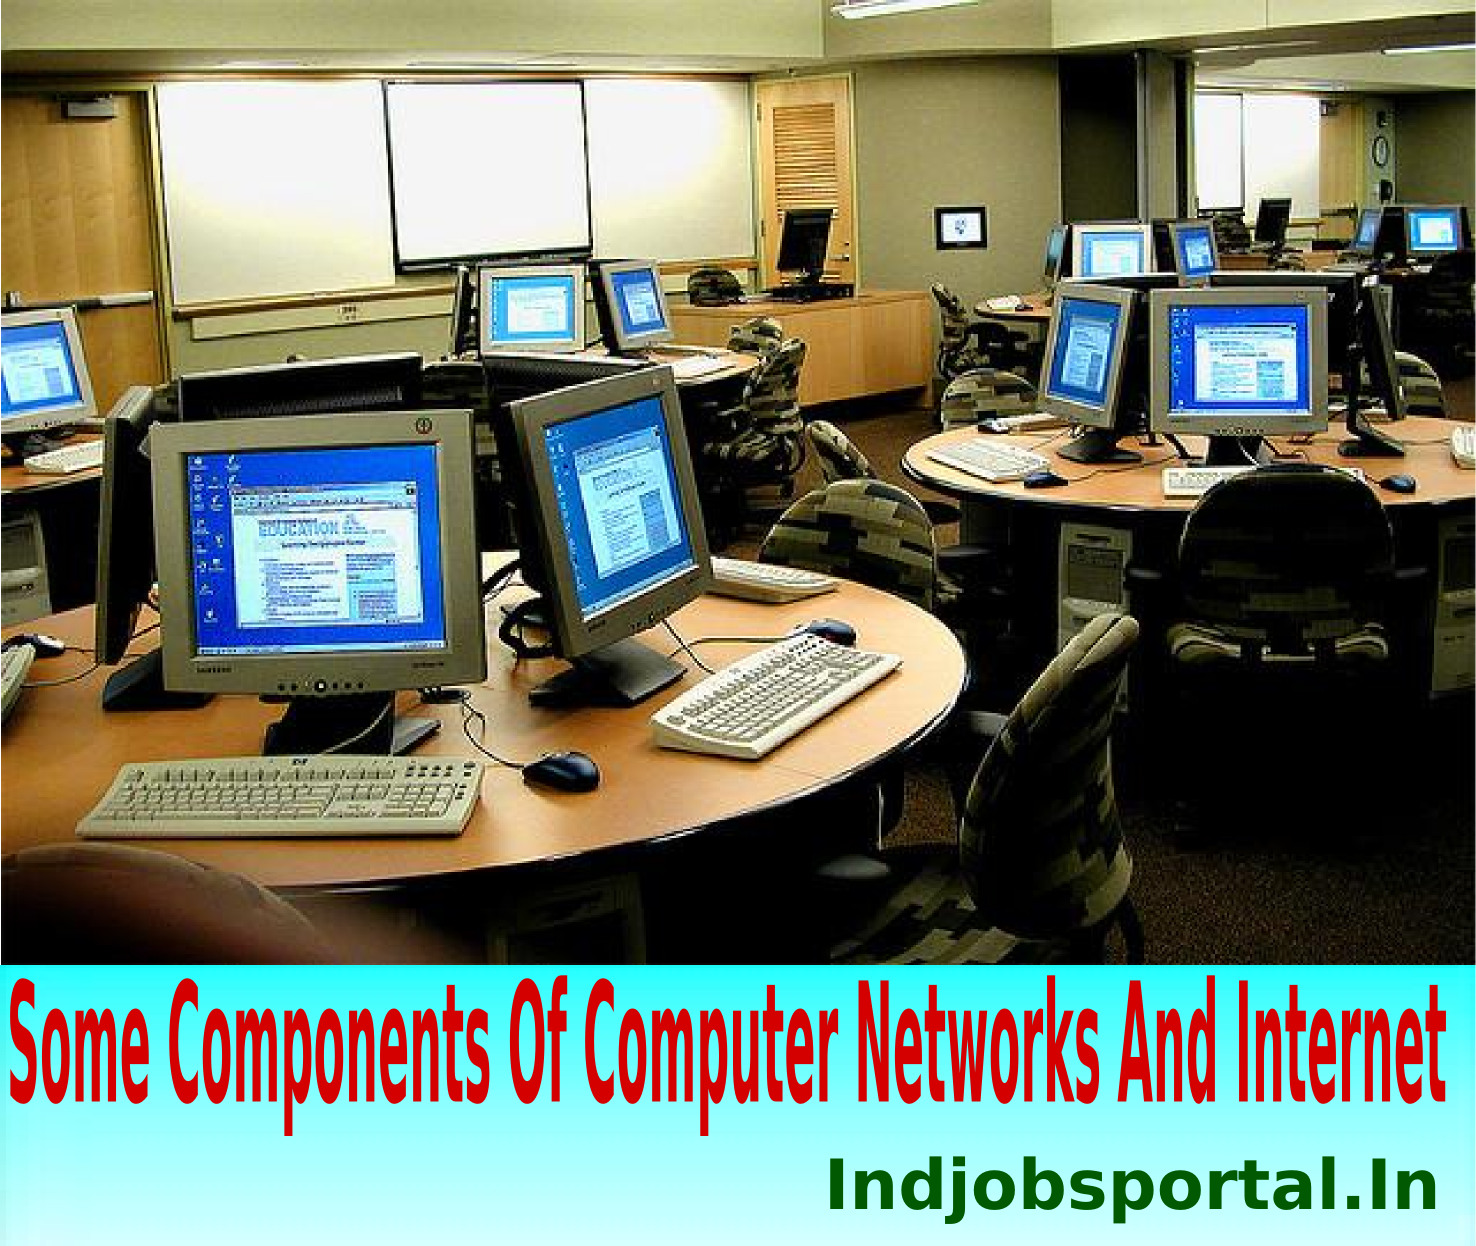 Some Componenets of Computer networks by indjobsportal.in